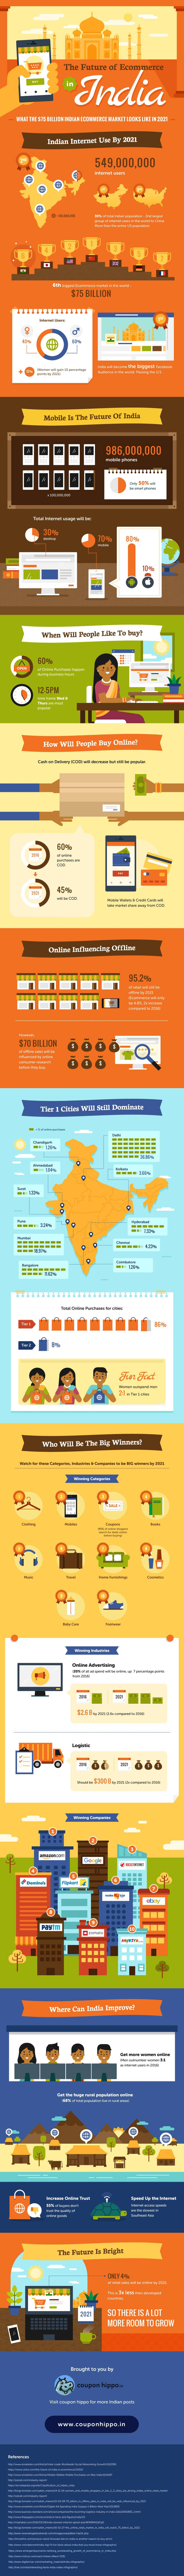 ecommerce in india infographic